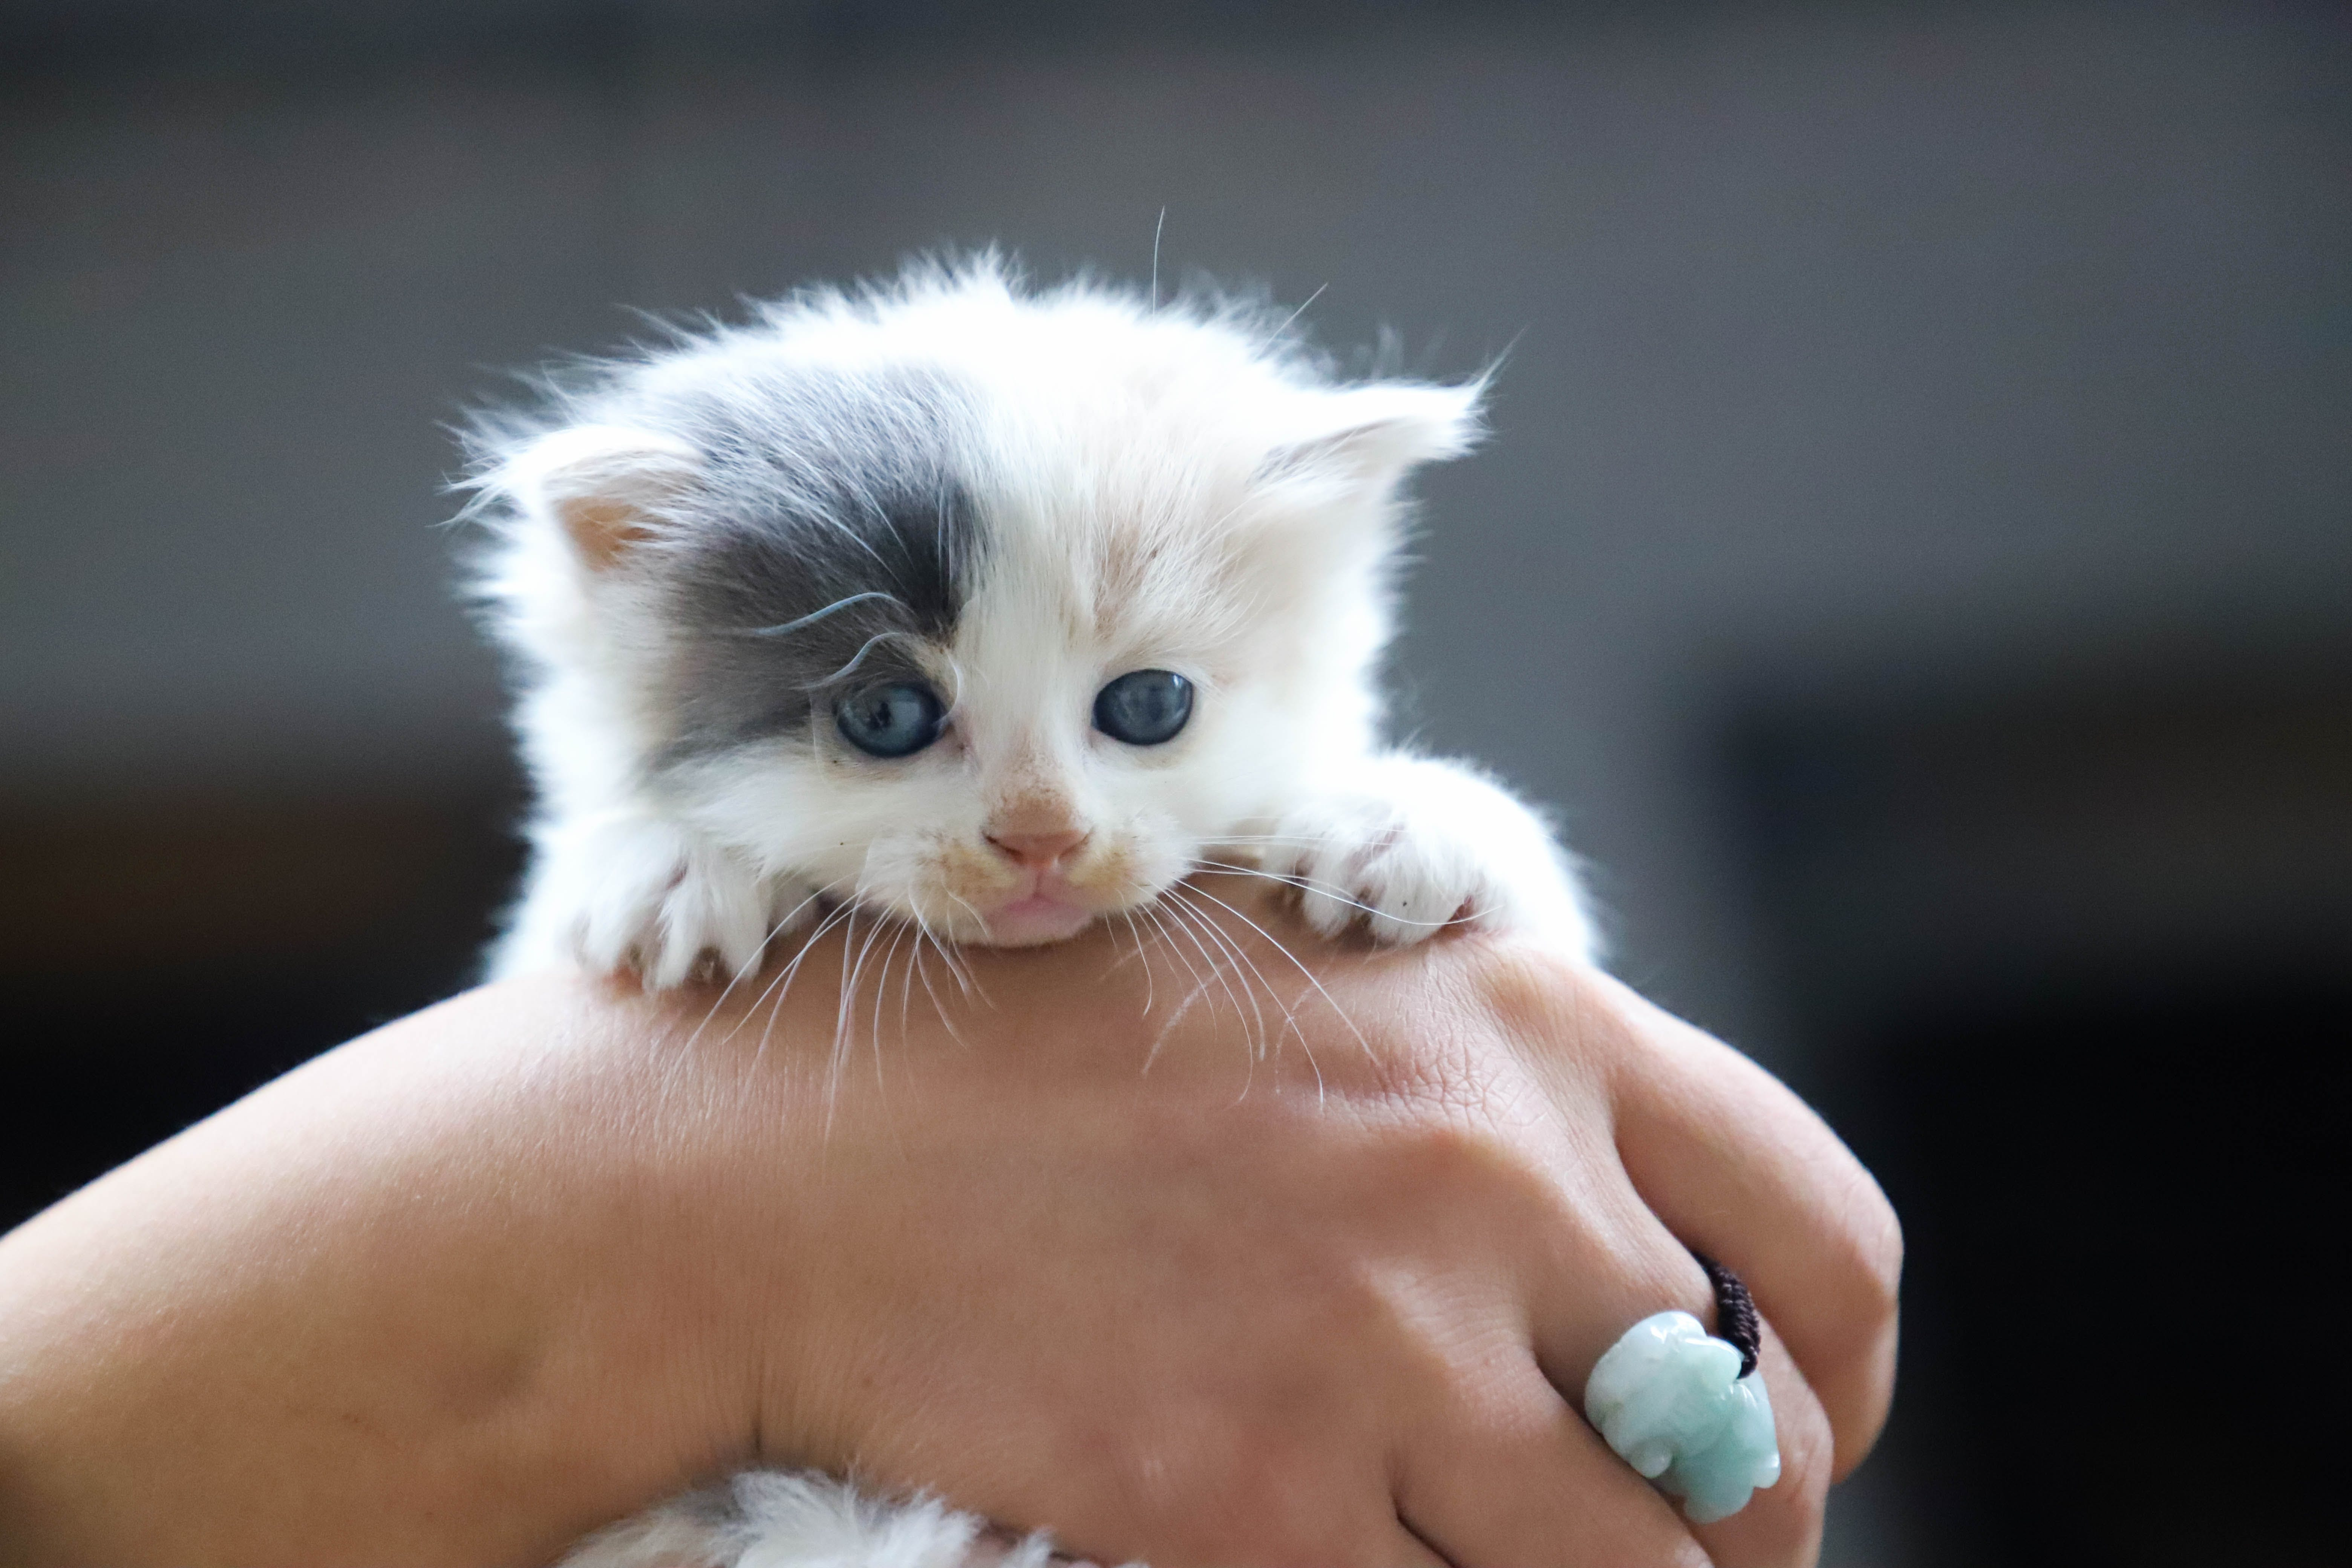 Close-Up Photo of Person Holding White Kitten